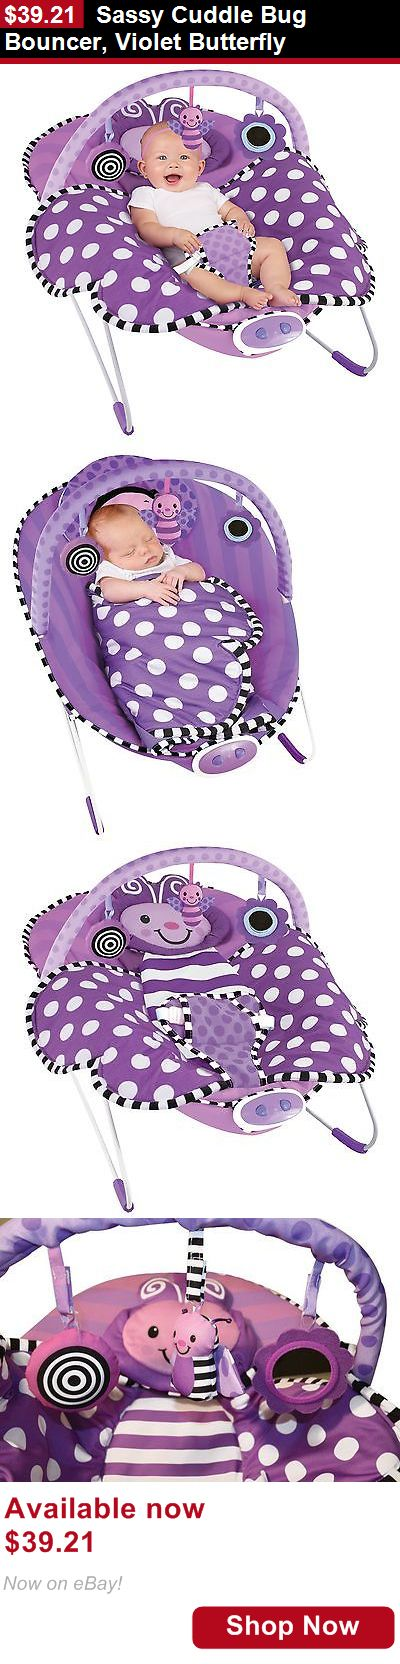 Baby bouncers and vibrating chairs: Sassy Cuddle Bug Bouncer, Violet Butterfly BUY IT NOW ONLY: $39.21